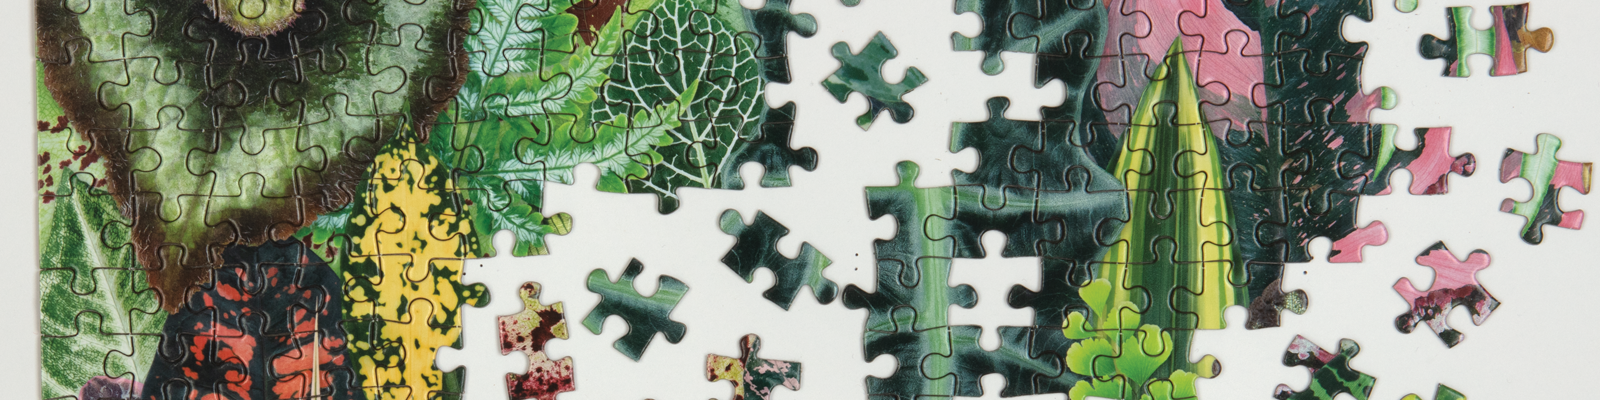 Jigsaw Puzzles from Galison